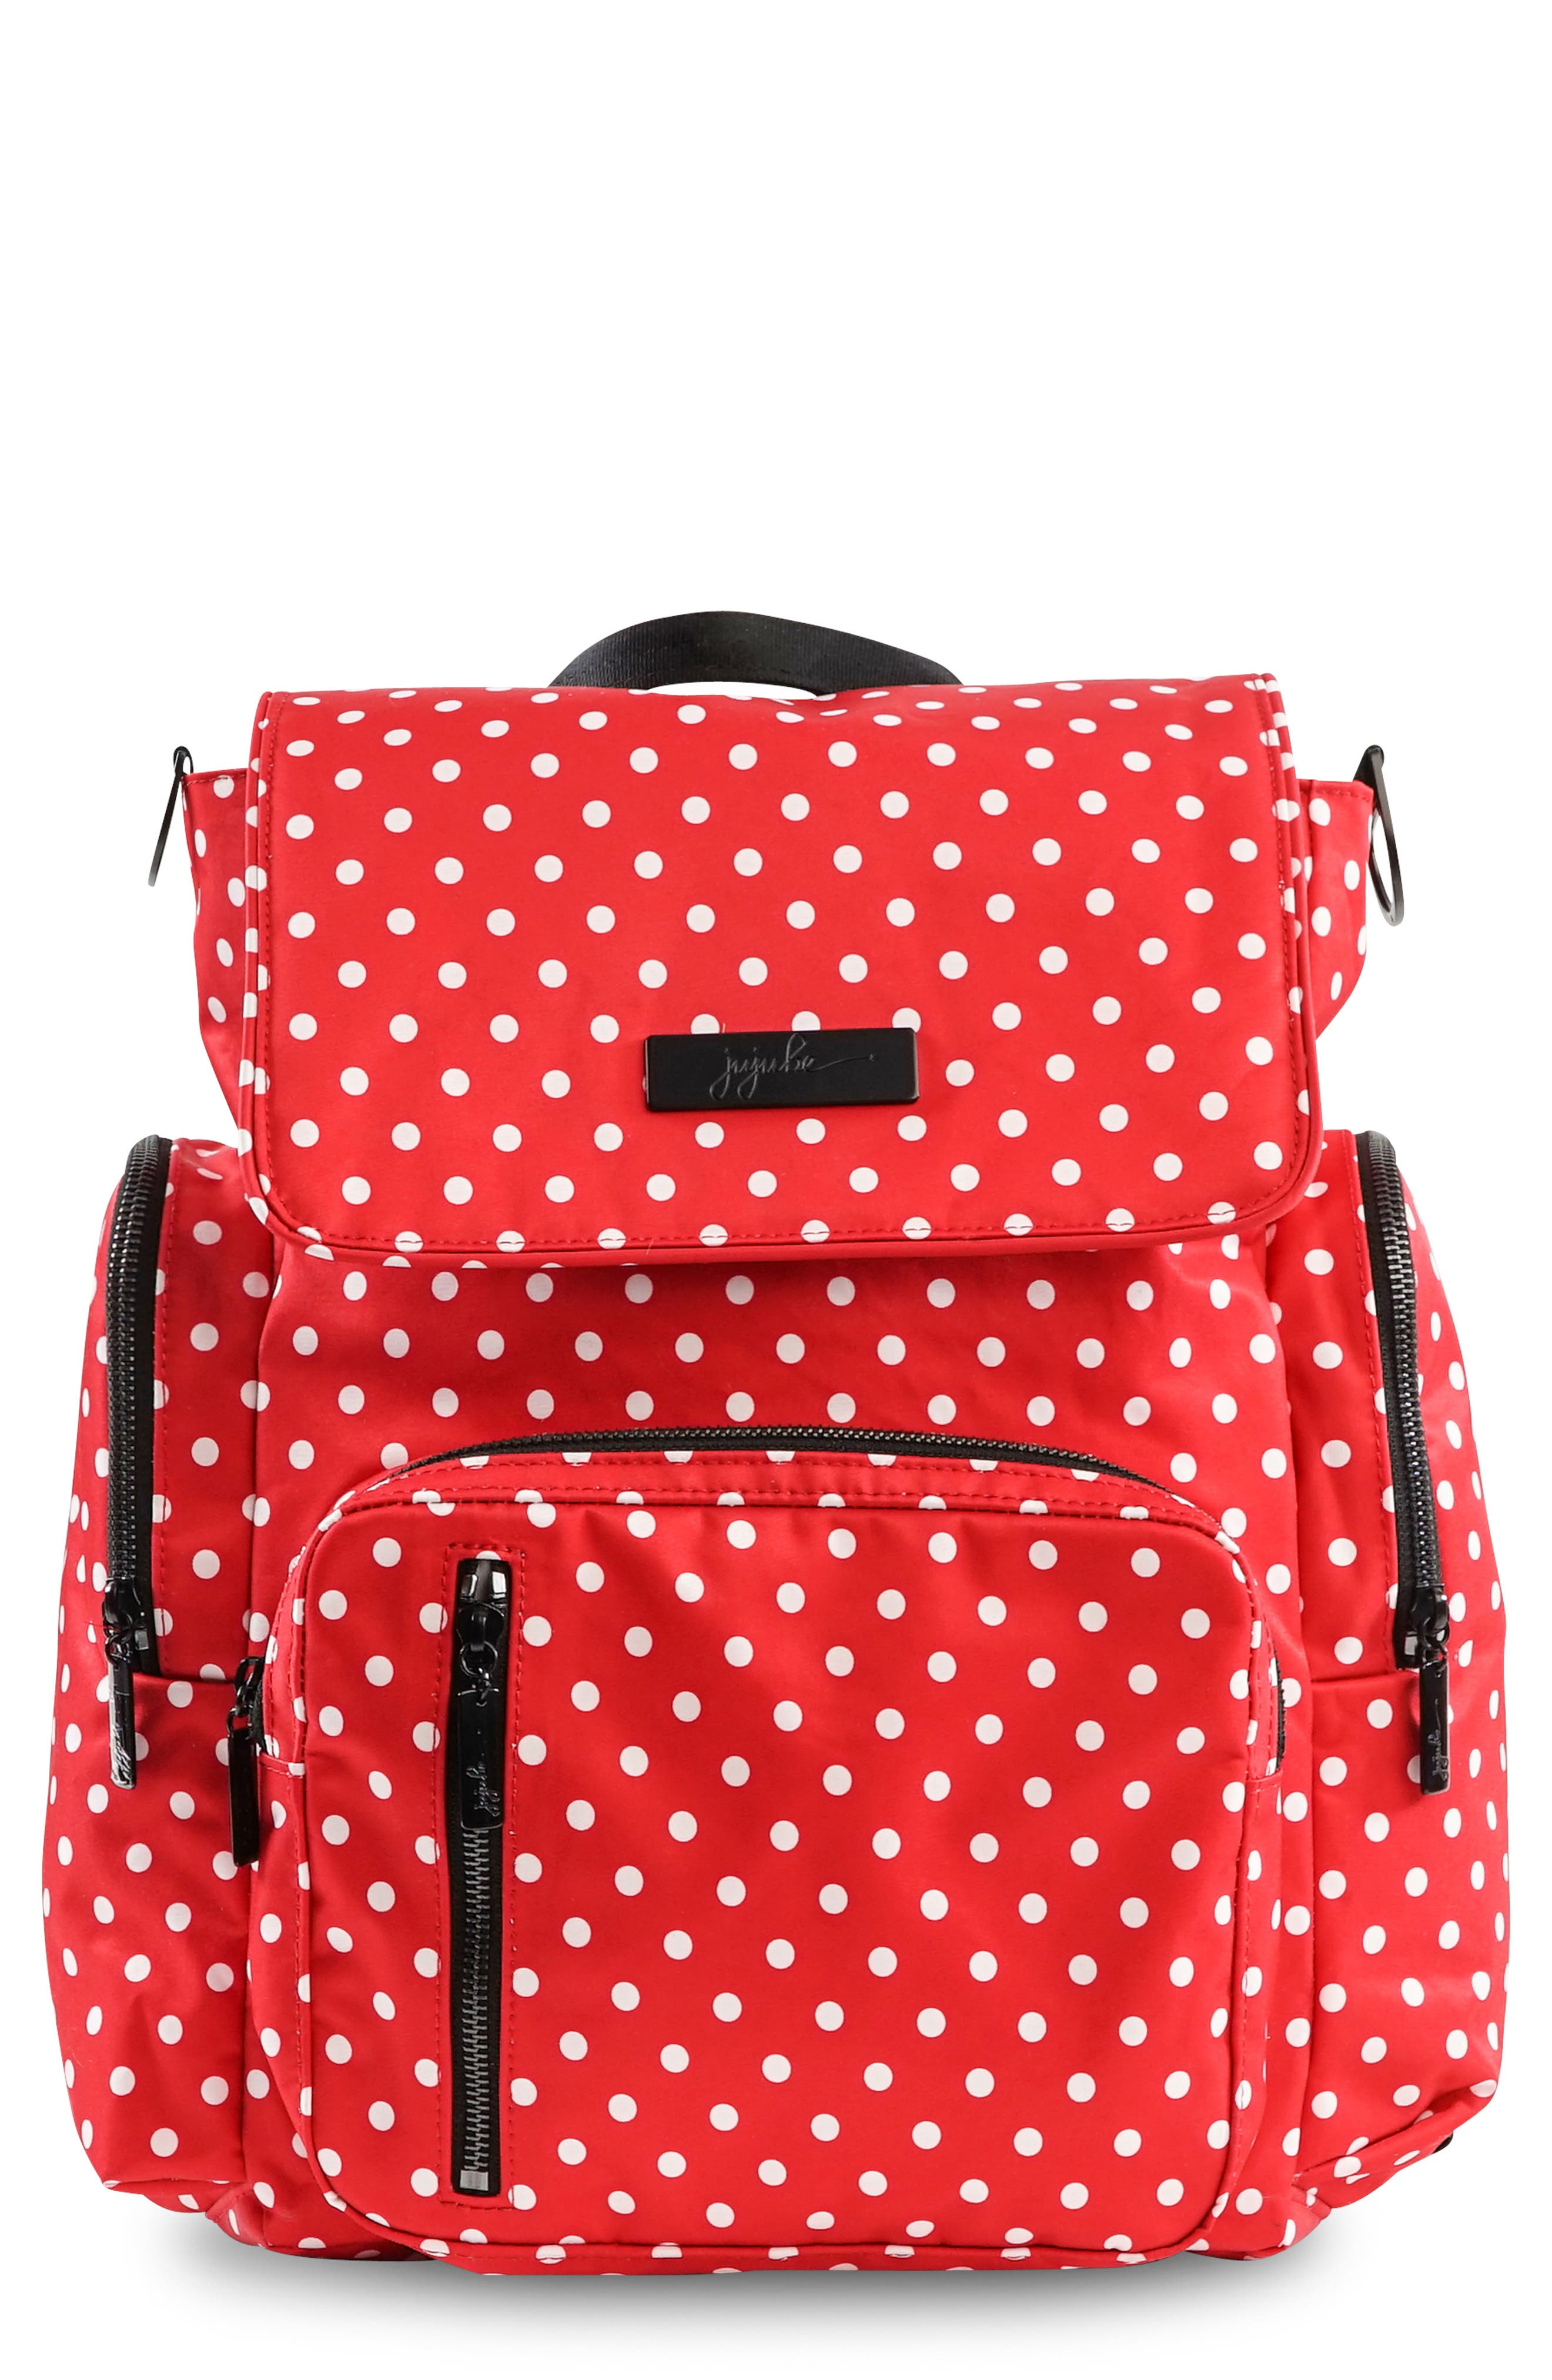 Onyx Be Sporty Diaper Backpack,                             Main thumbnail 1, color,                             BLACK RUBY